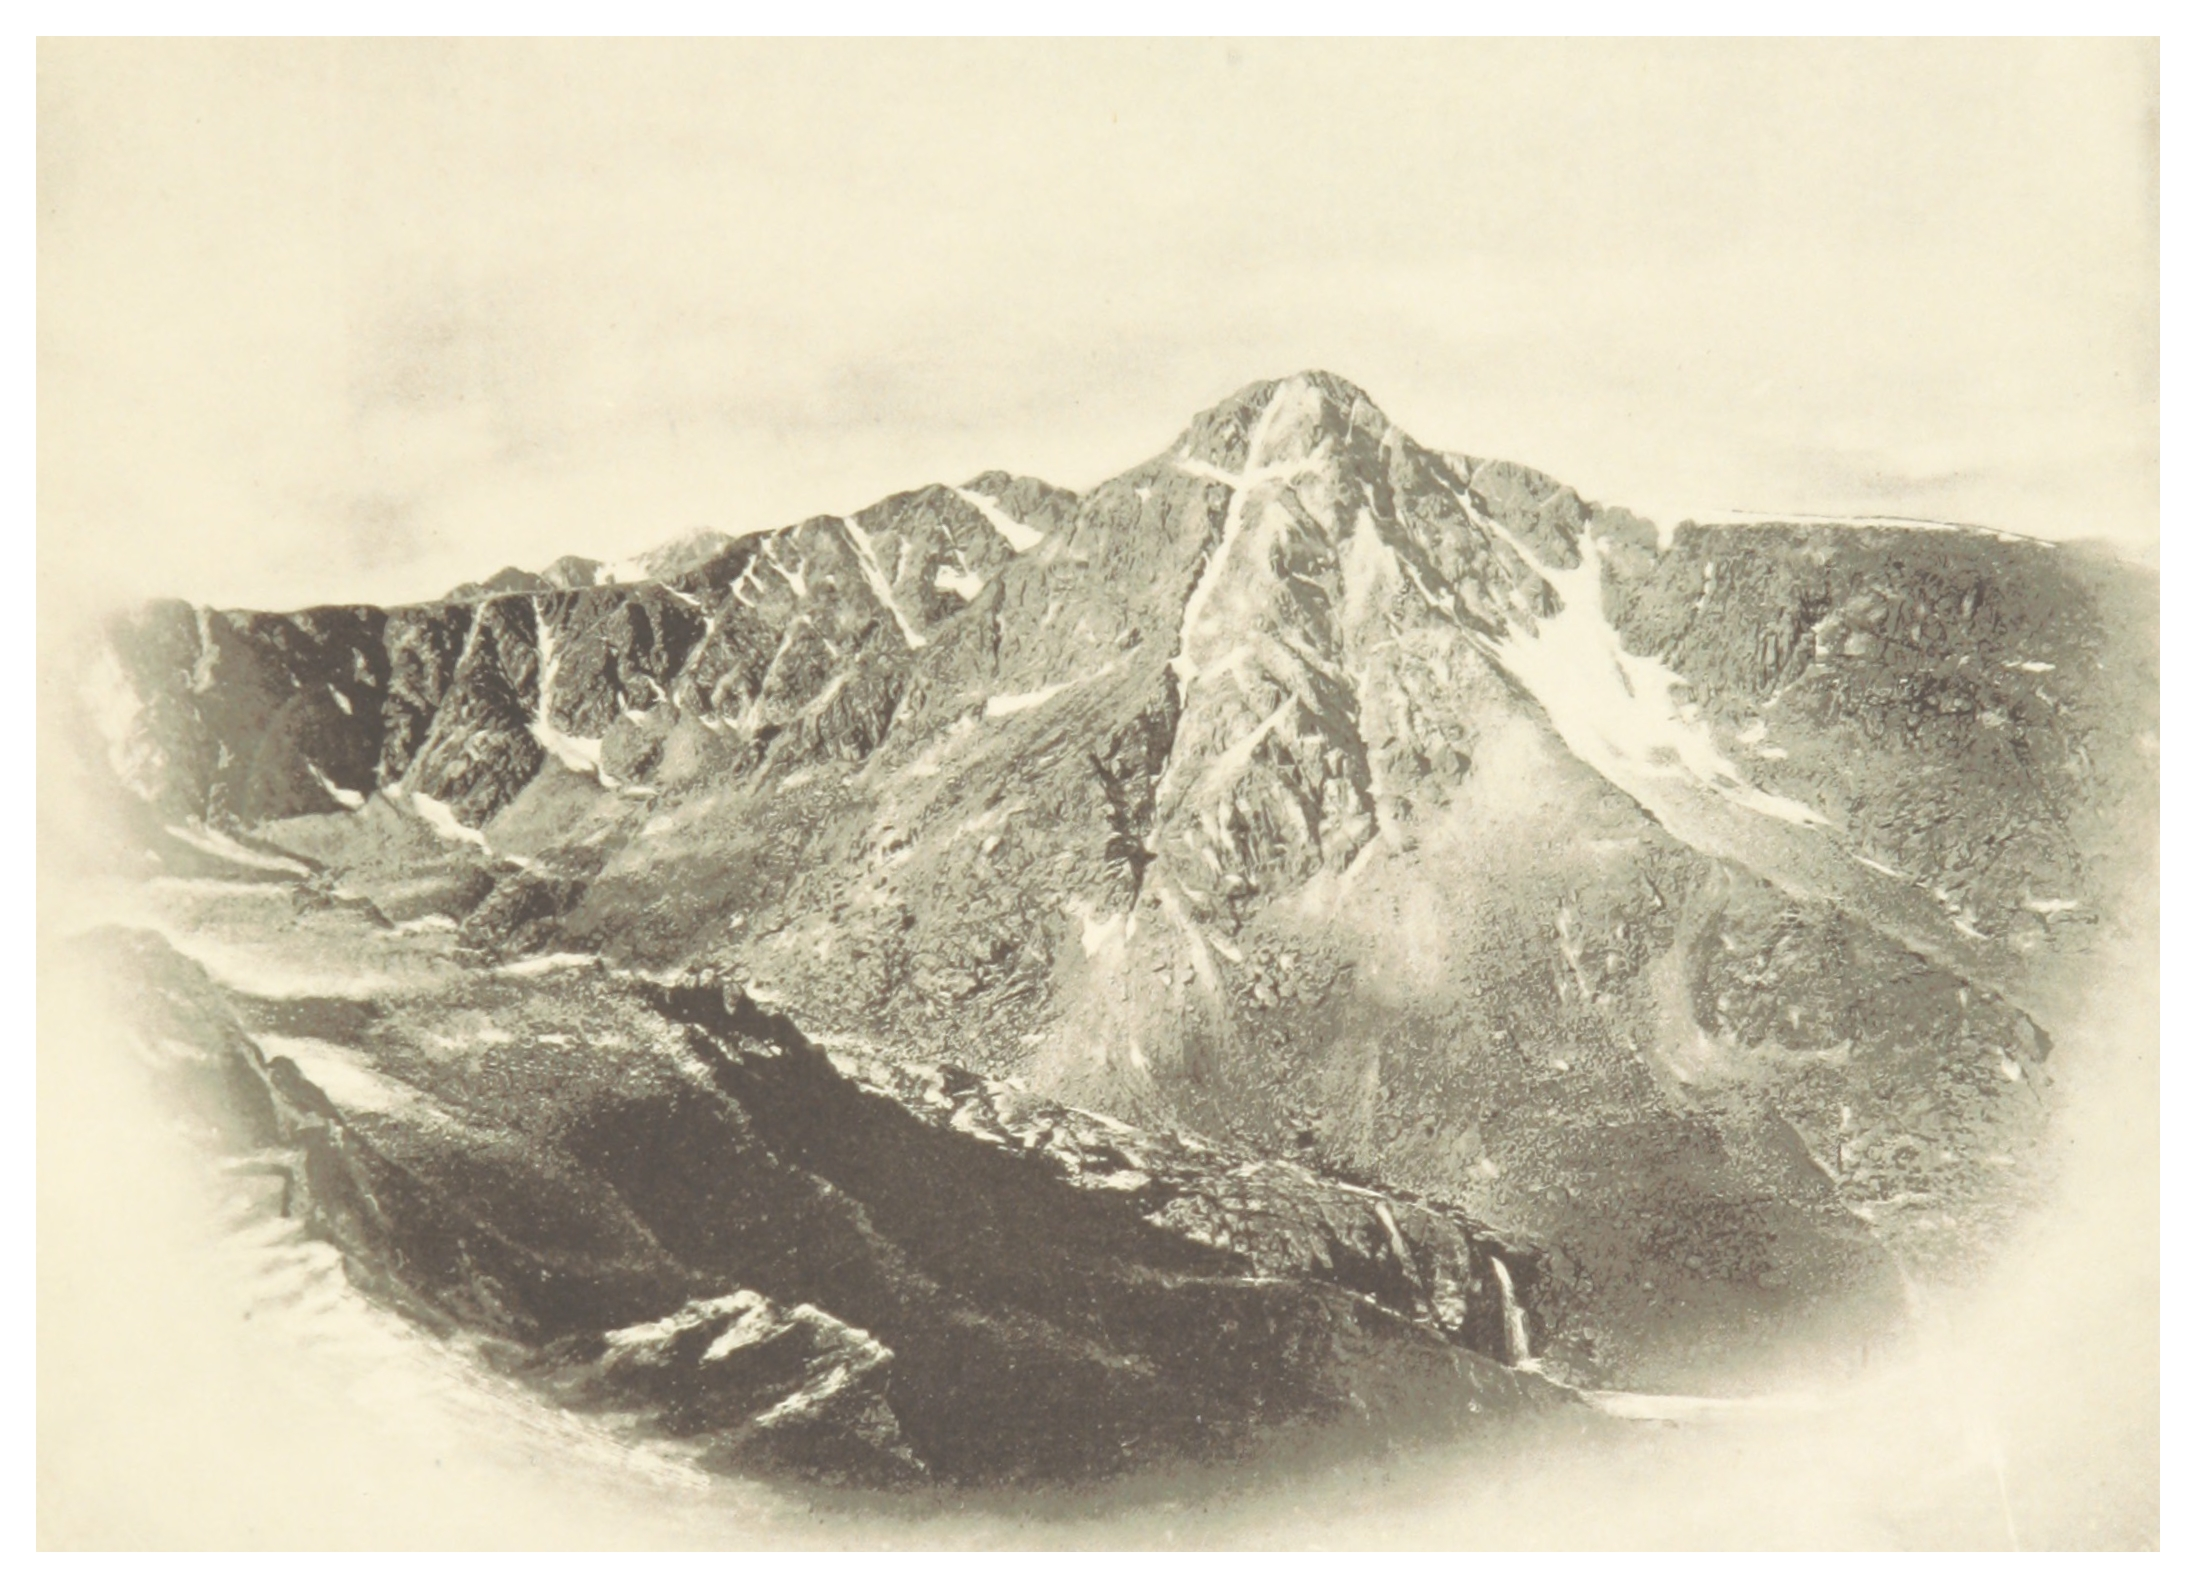 A photograph of Mount of the Holy Cross, taken in 1887 by photographer William Henry Jackson.